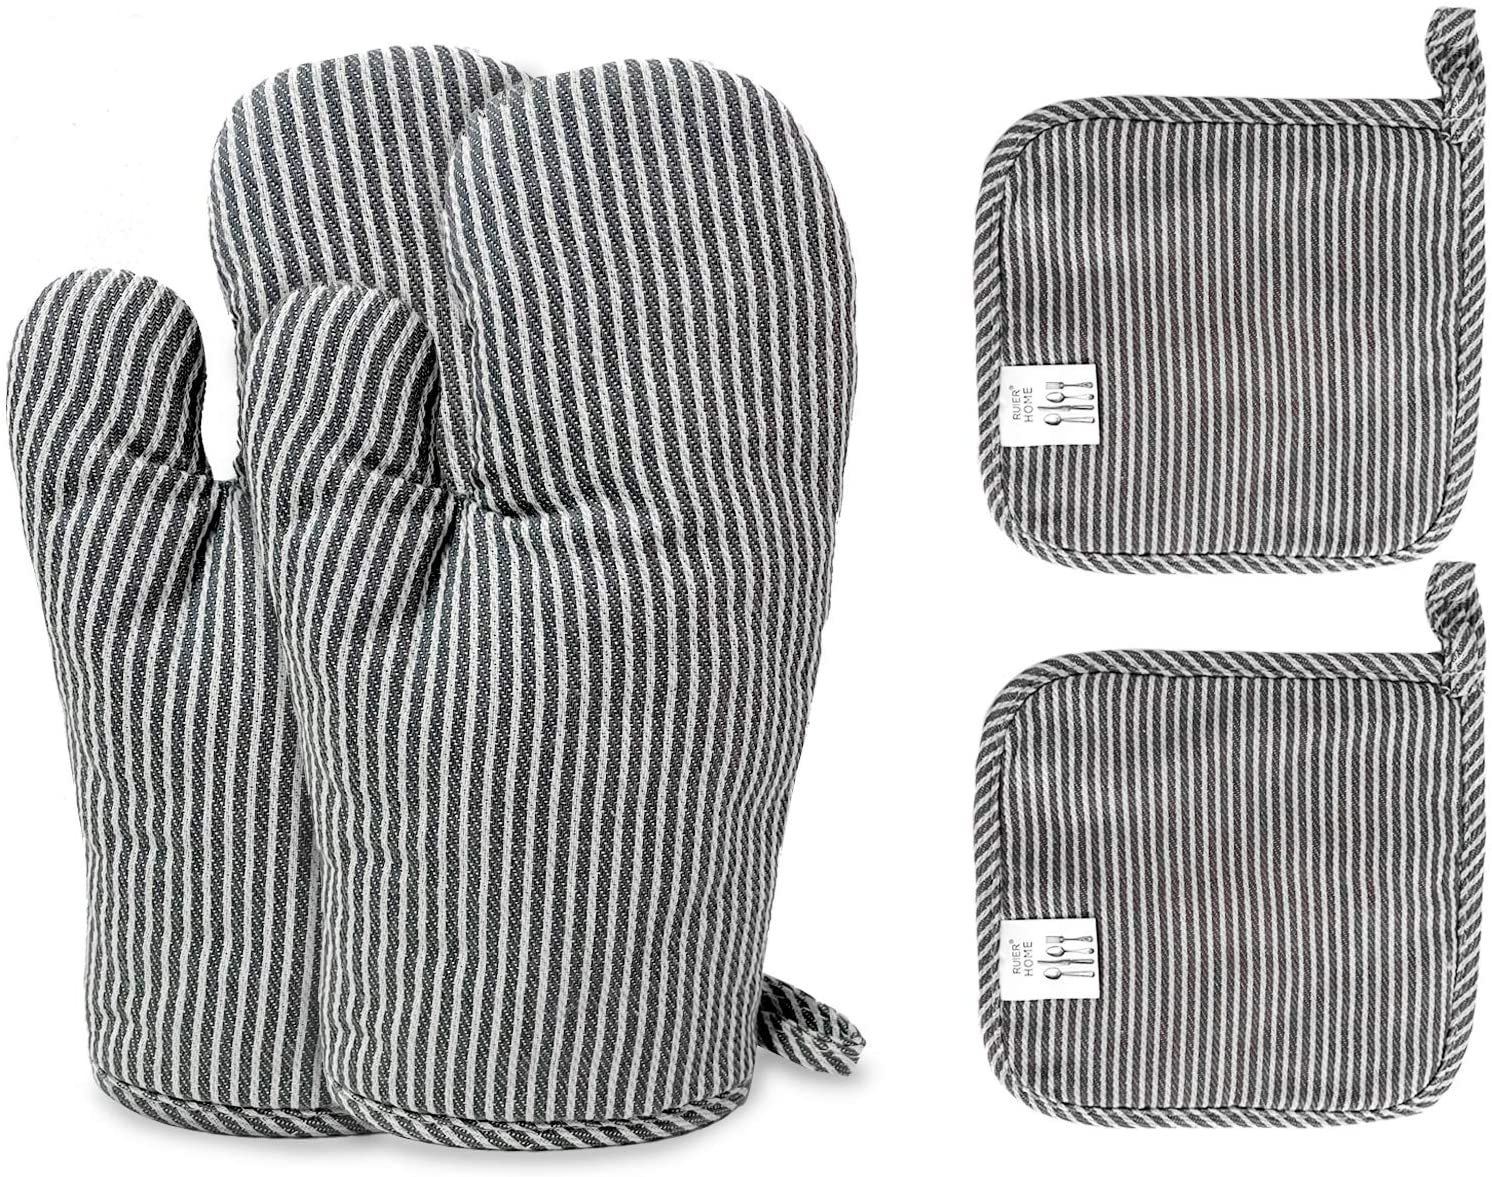 4Pcs Oven Mitts and Pot Holders, Heat Resistant Oven Mitts with Pothholder and Non-Slip Surface Safe for Baking, Cooking, BBQ